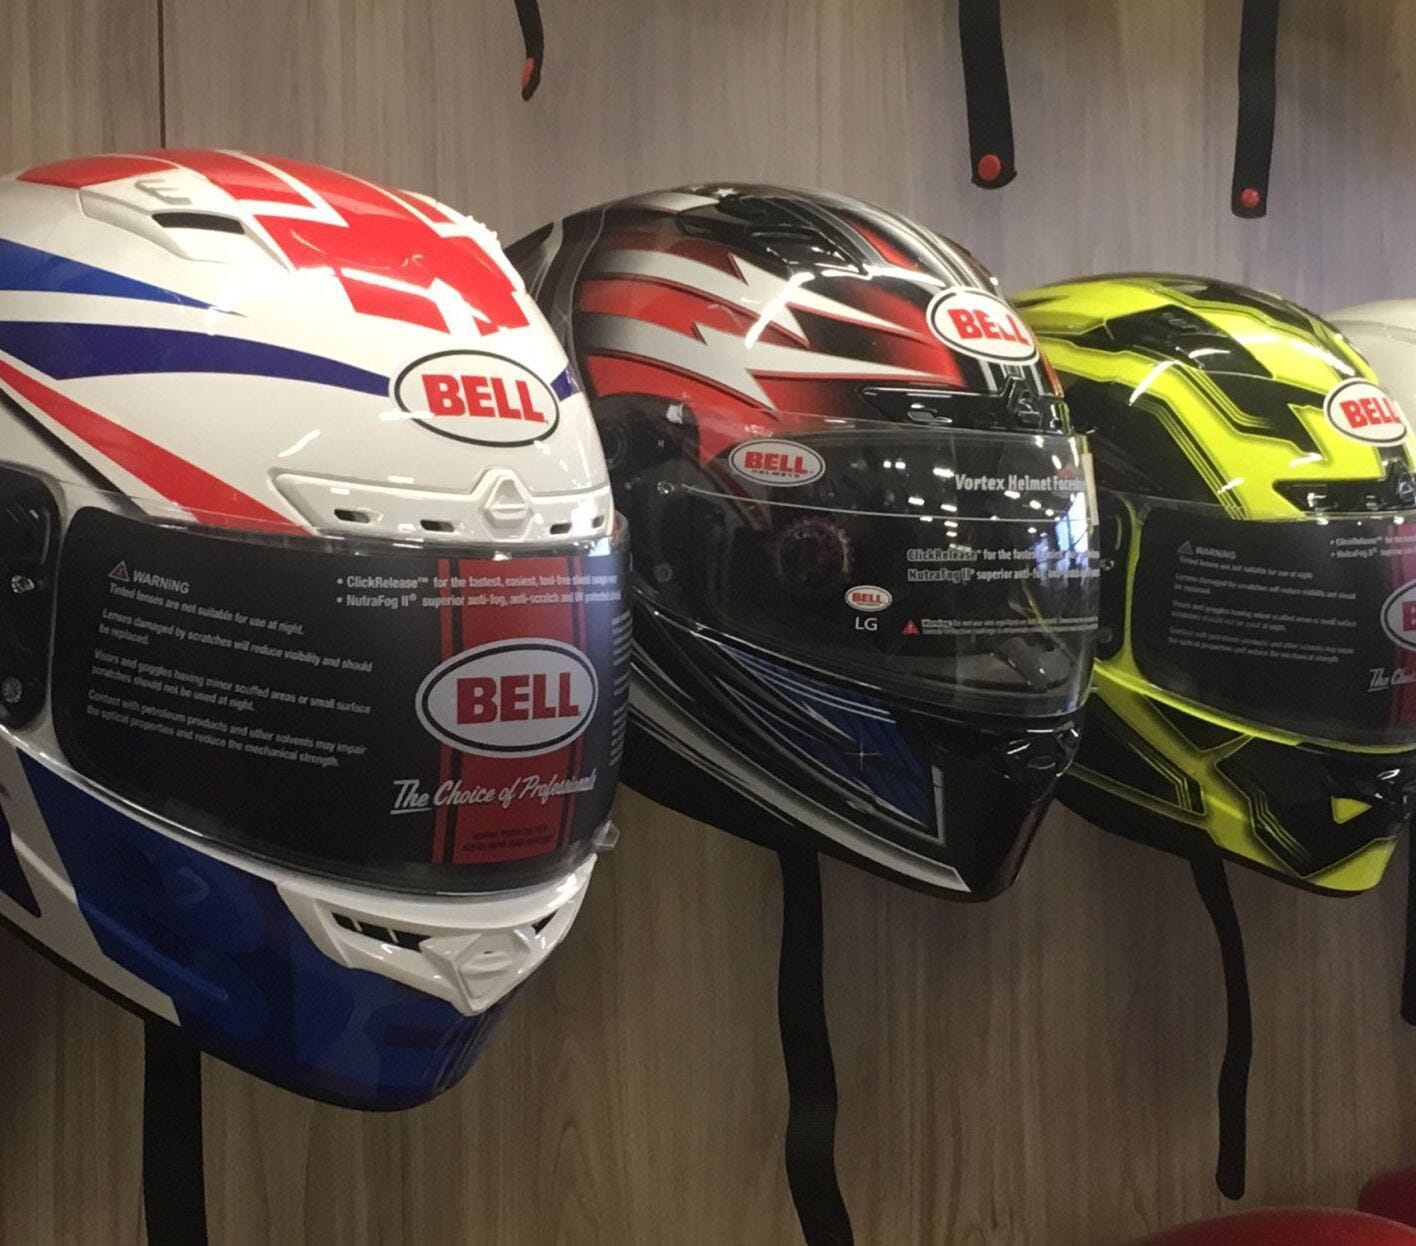 Do you support a repeal of Missouri's motorcycle helmet law?